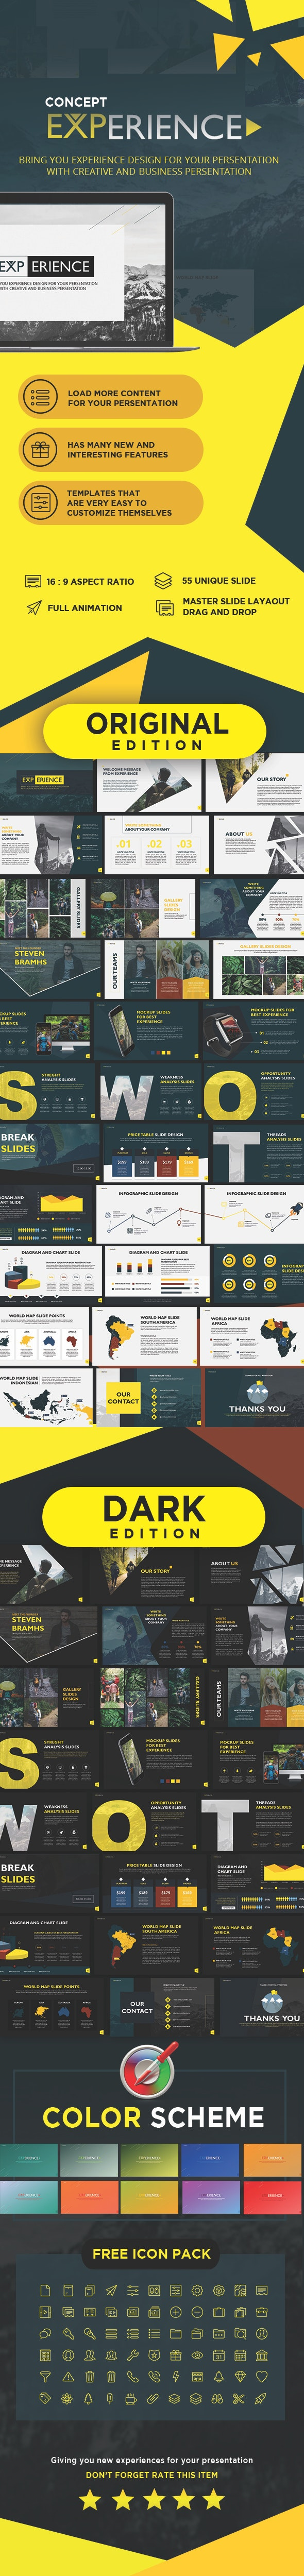 Concept Experience Presentation Powerpoint Template - Creative PowerPoint Templates